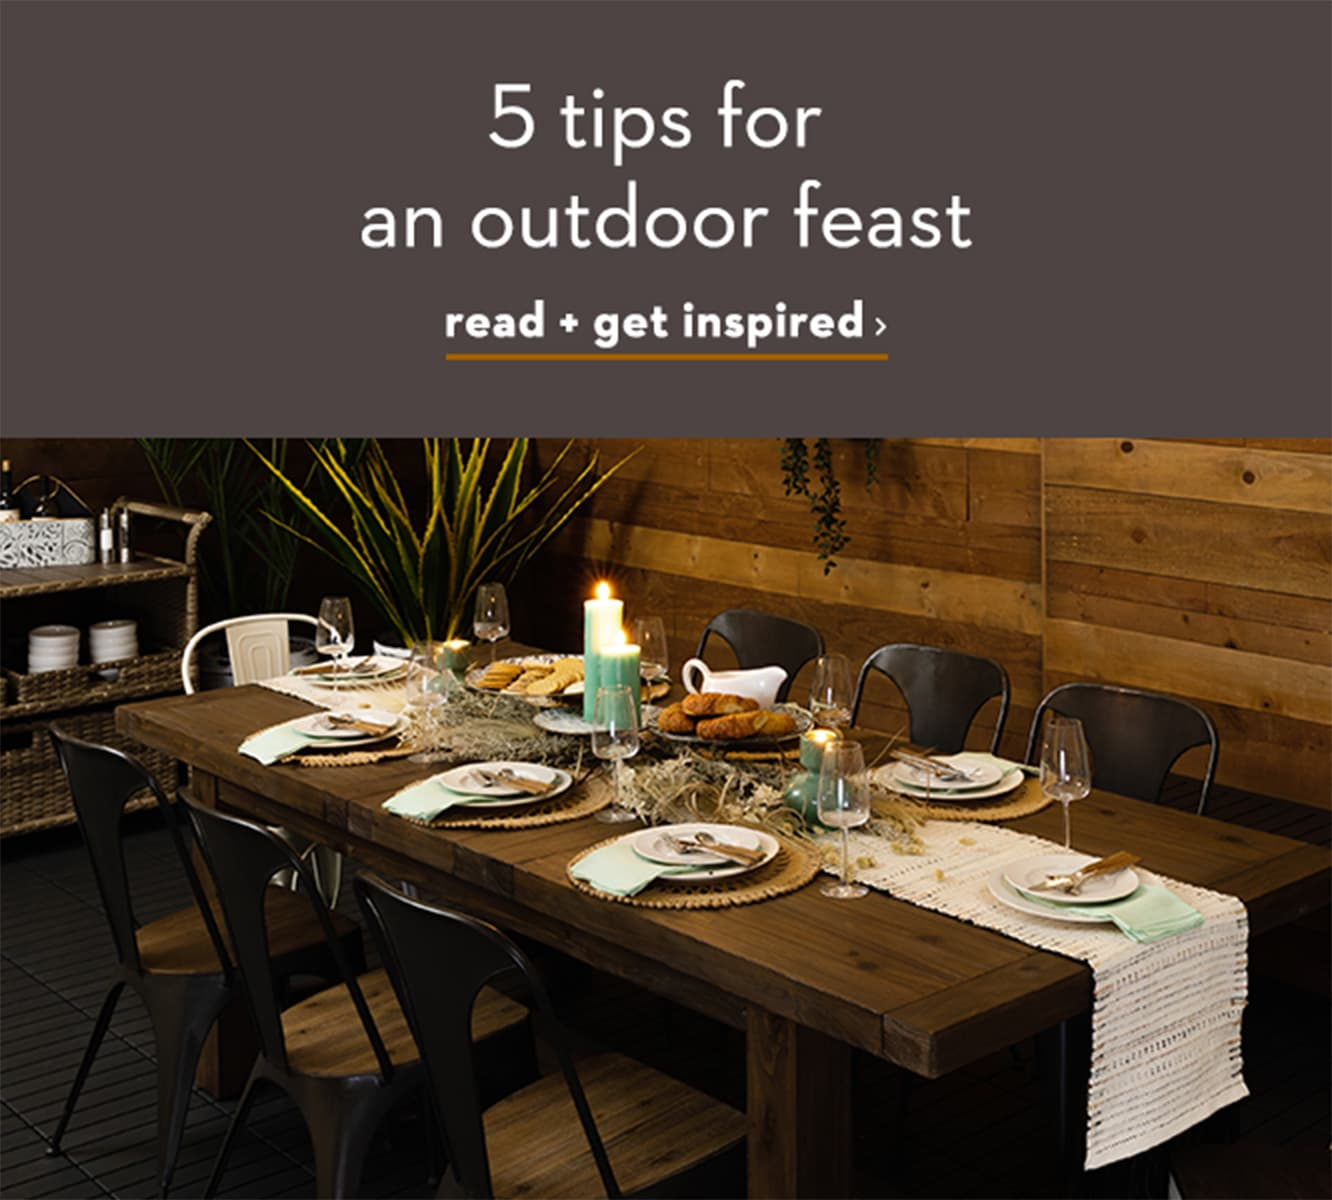 5 tips for an outdoor feast